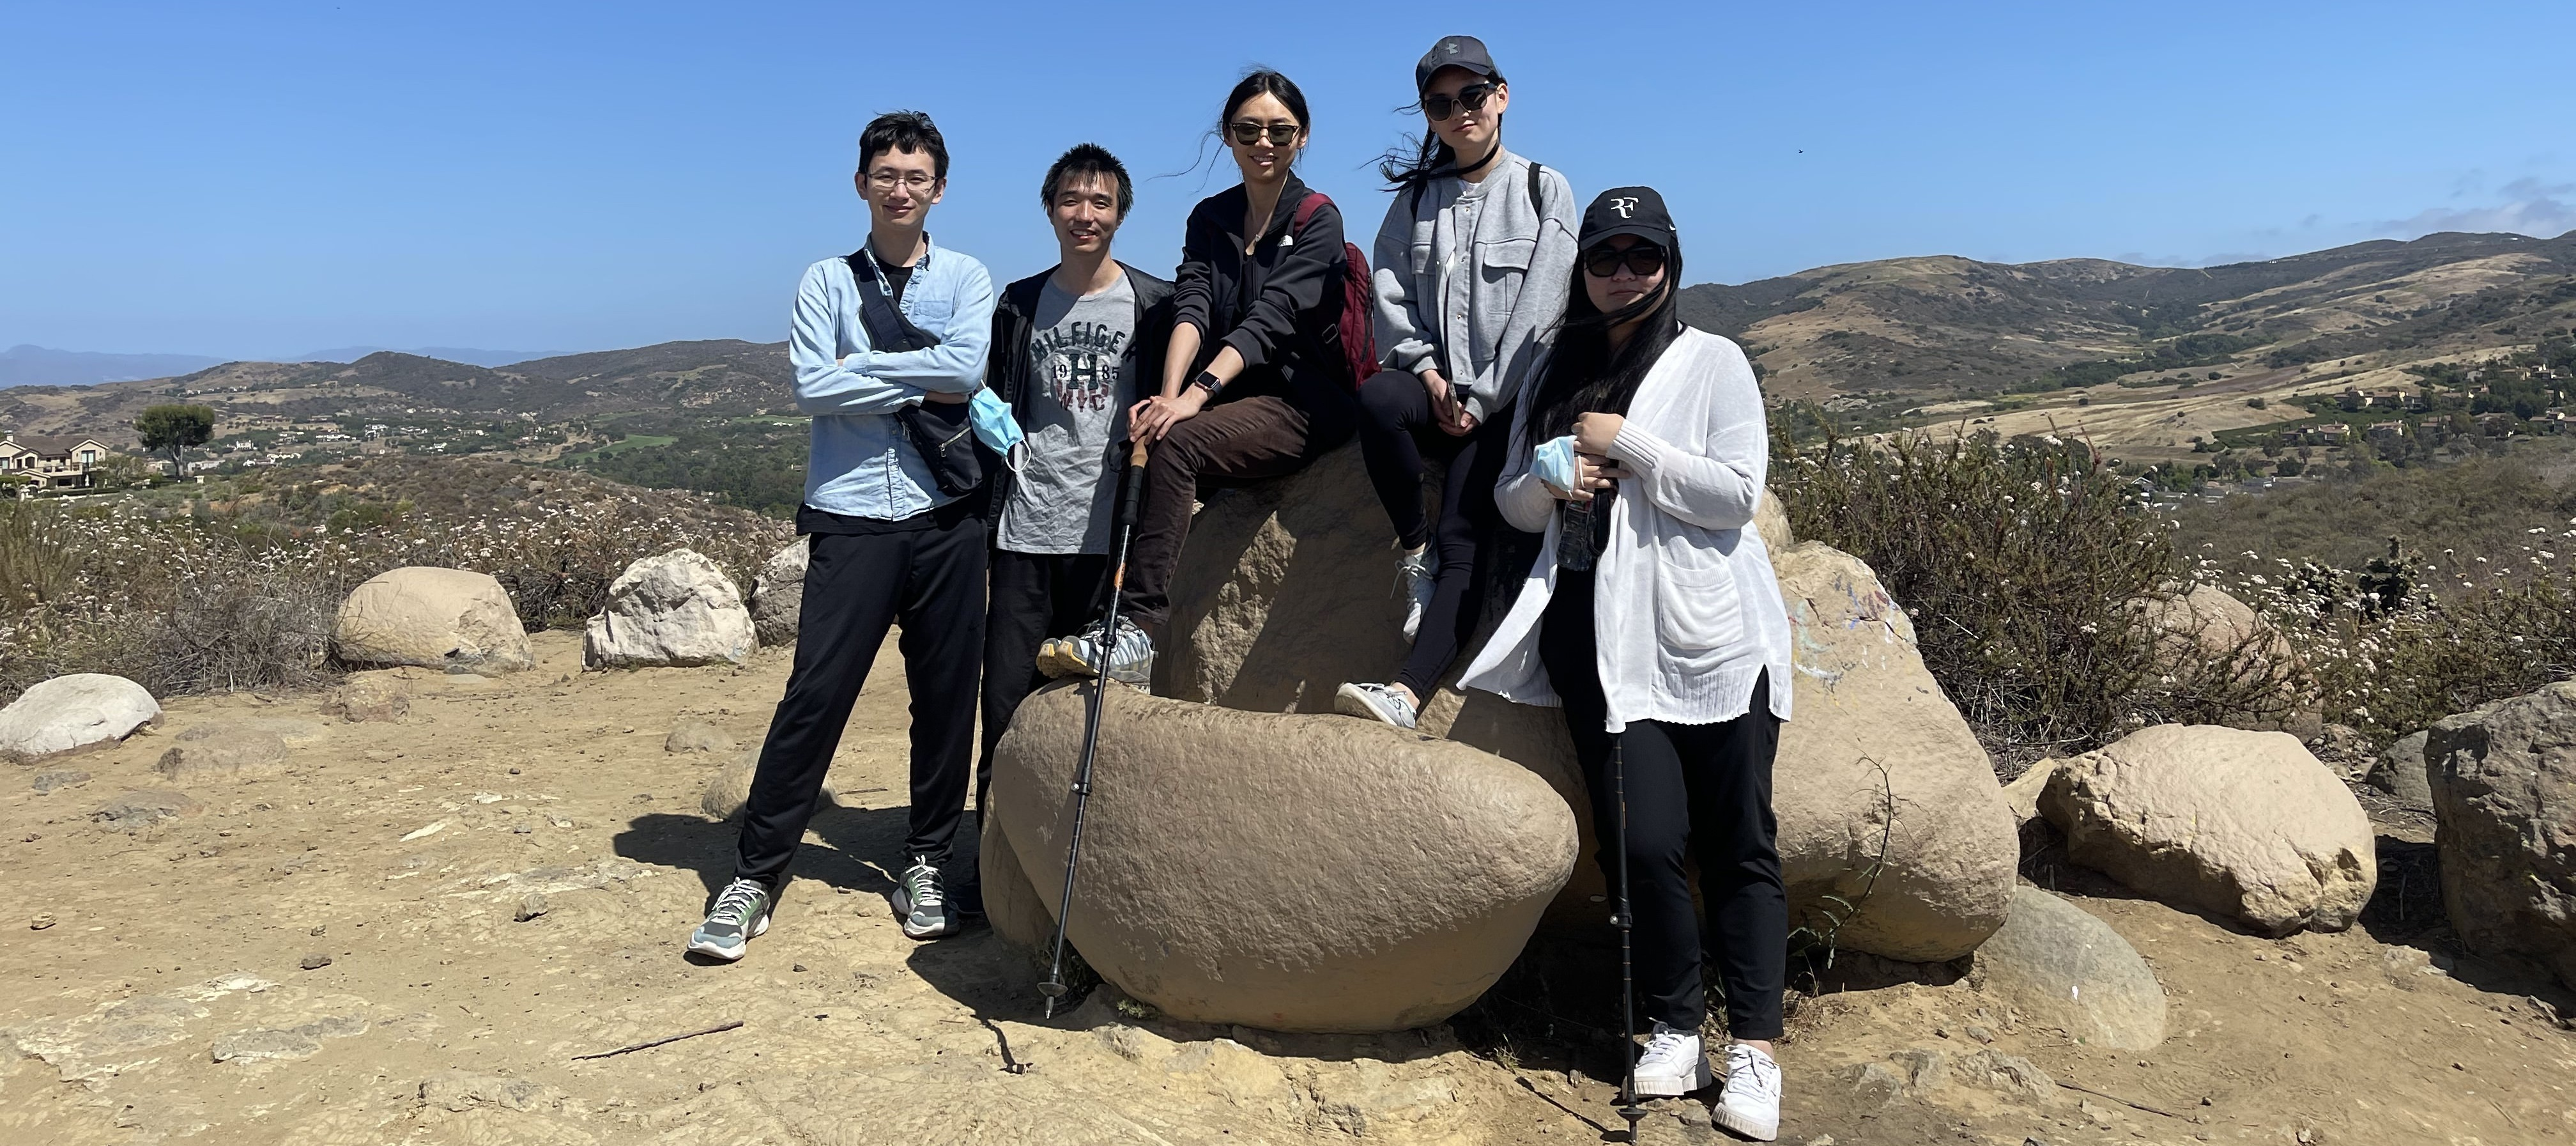 Hiking at Turtle Rock, Irvine (May 2021)